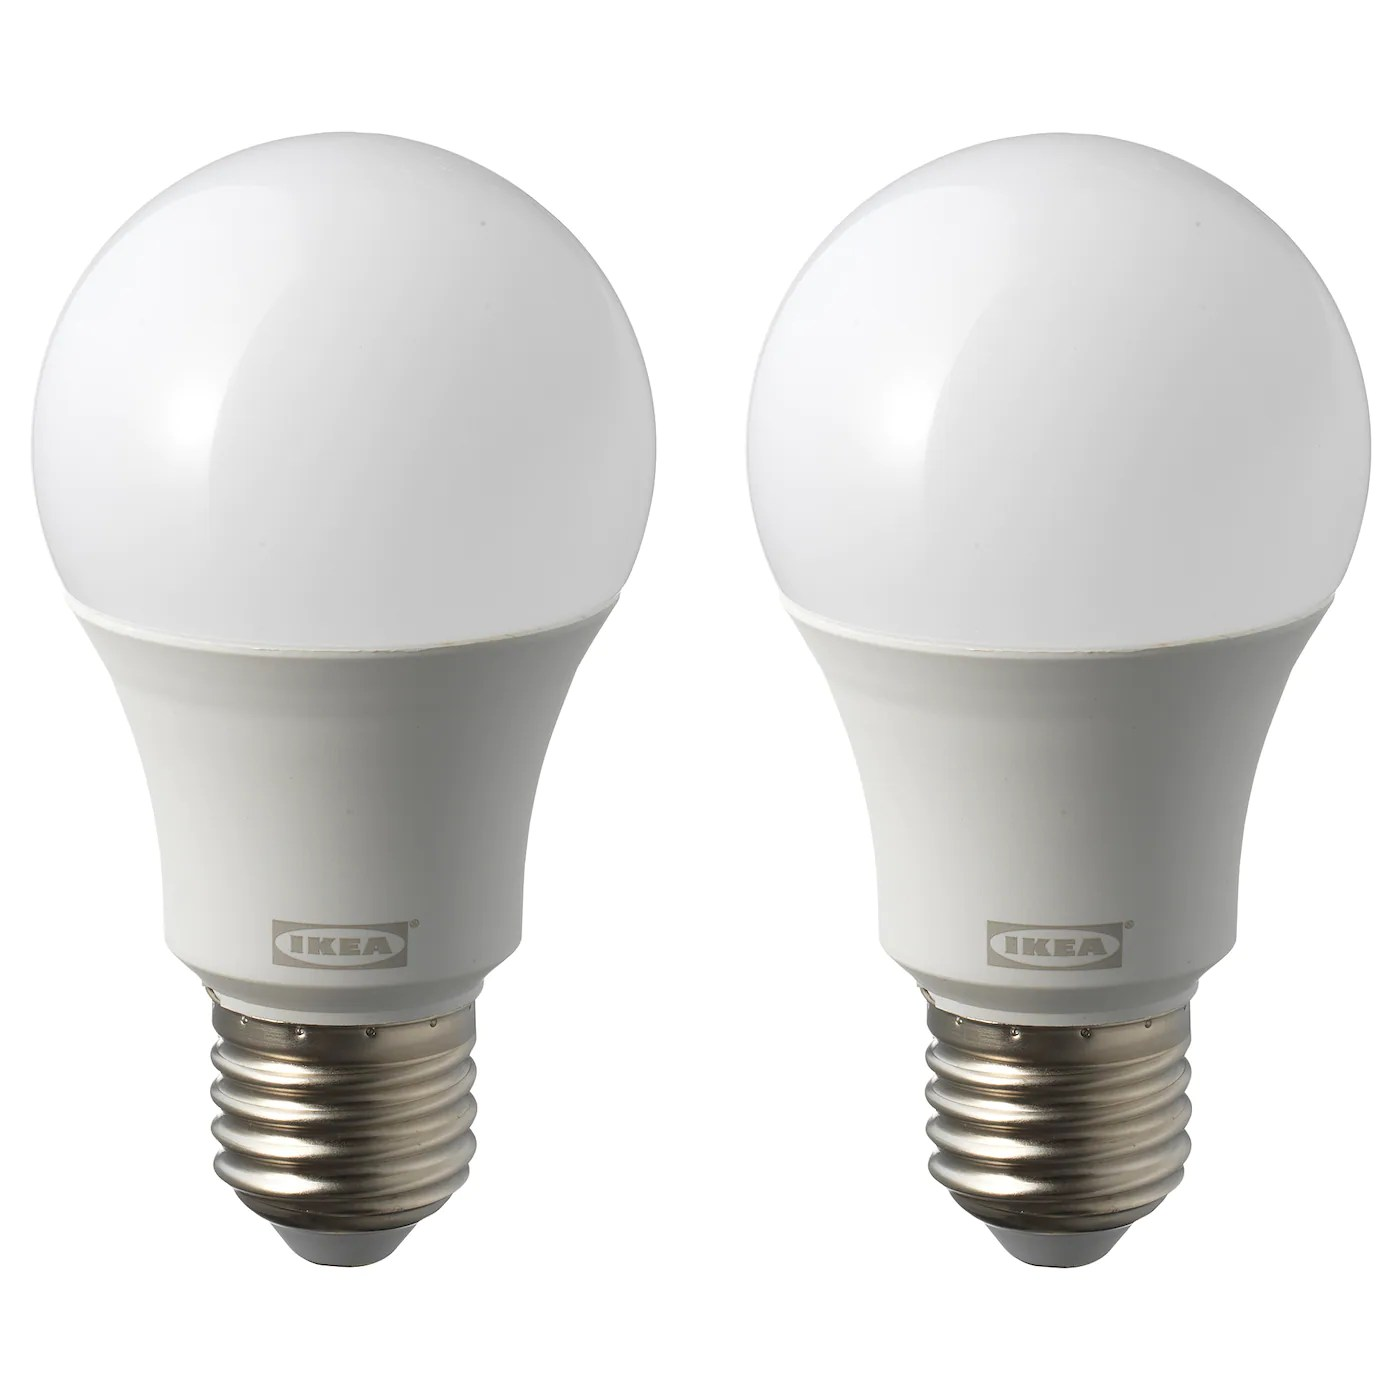 Ampoule Led Ikea Lunnom Led Bulb E27 400 Lumen Dimmable Globe